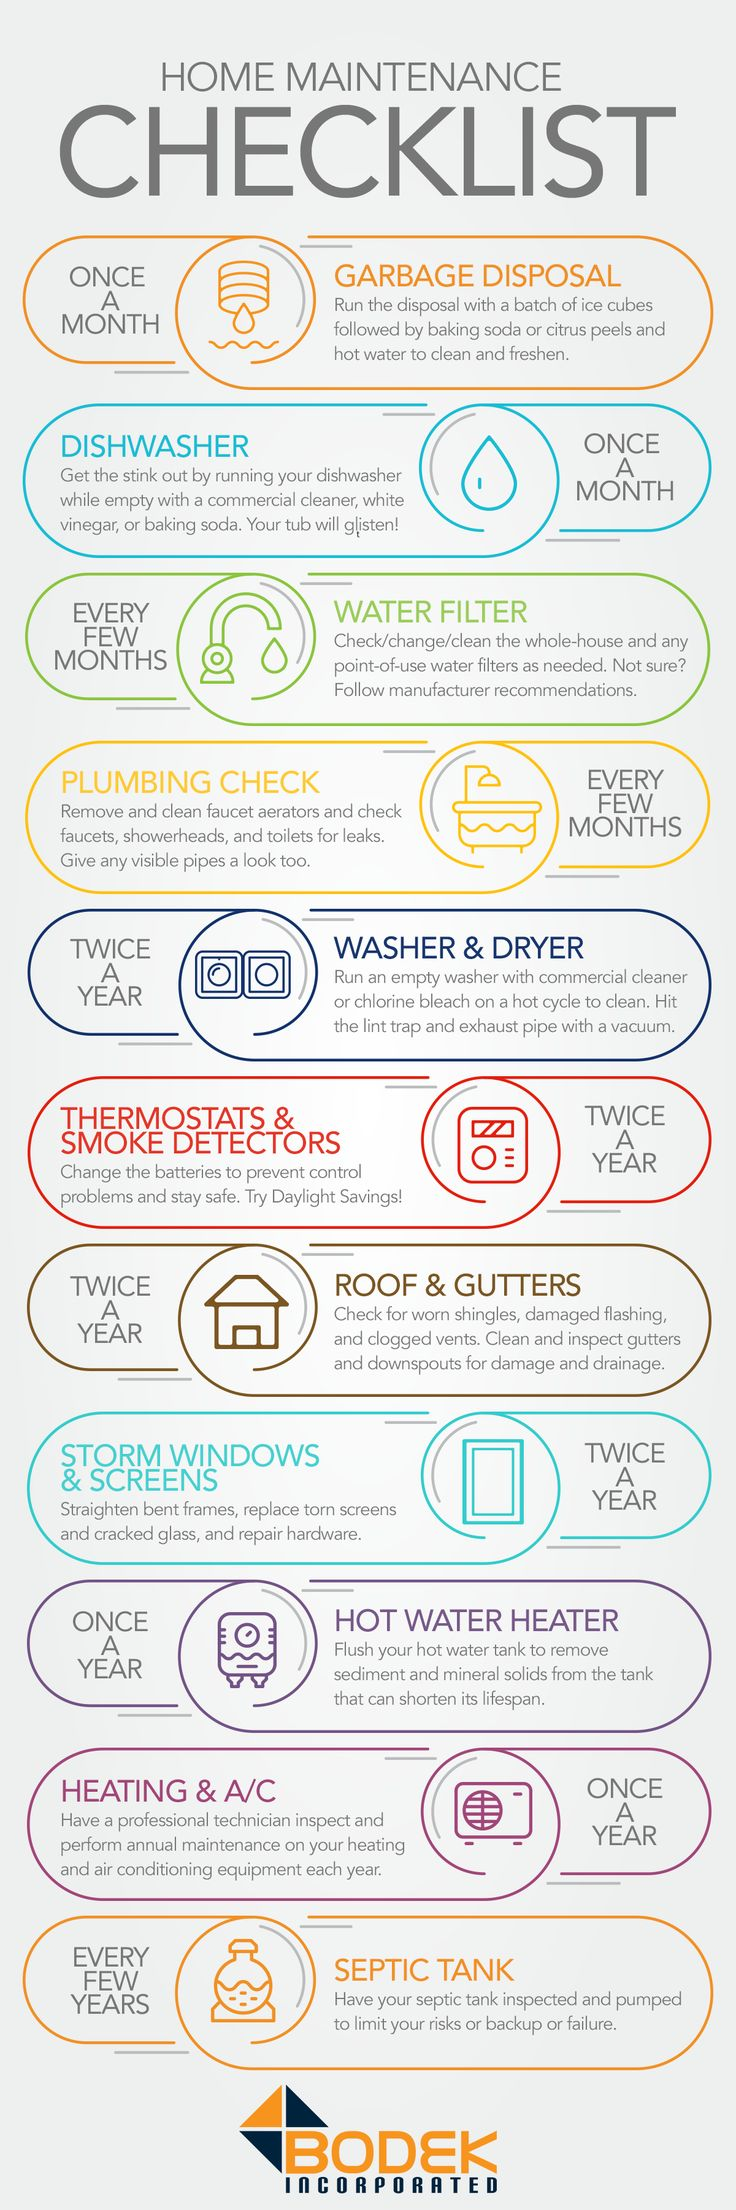 Your Quick Home Maintenance Checklist Of High Points That You Might Not  Remember (or Would Prefer Not To Think About... Weu0027re Looking At You Septic  Tank!)